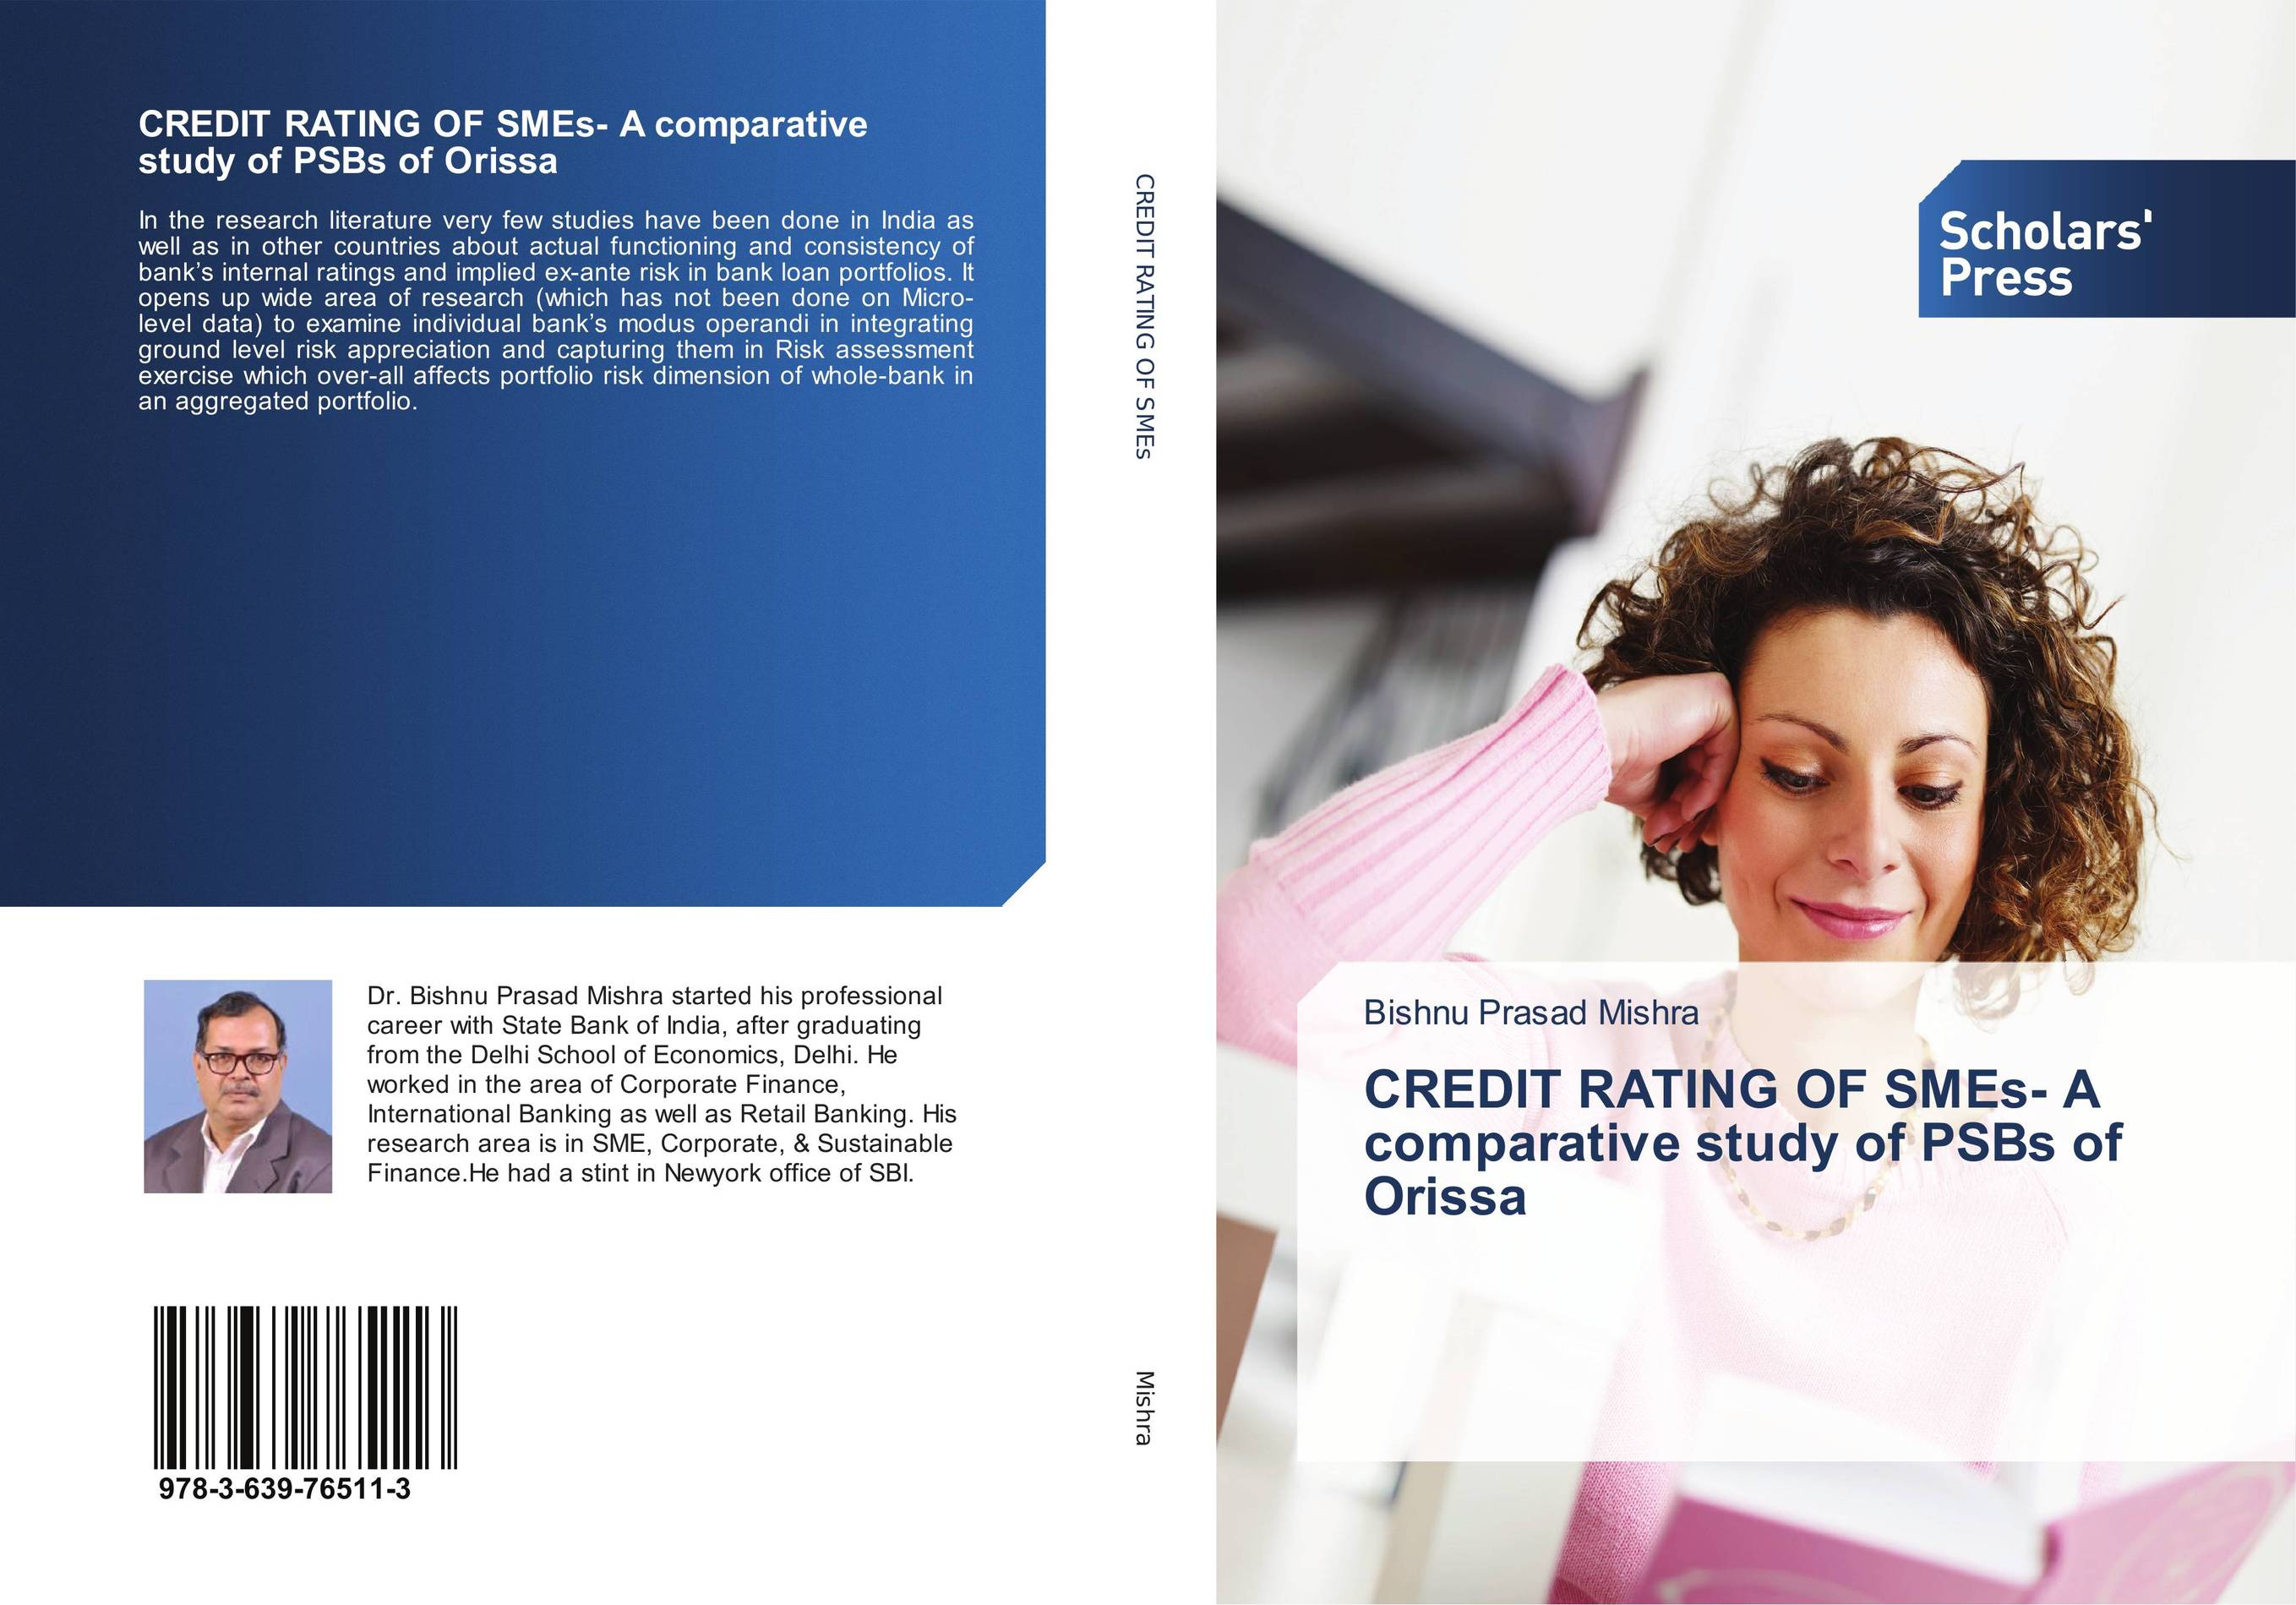 CREDIT RATING OF SMEs- A comparative study of PSBs of Orissa